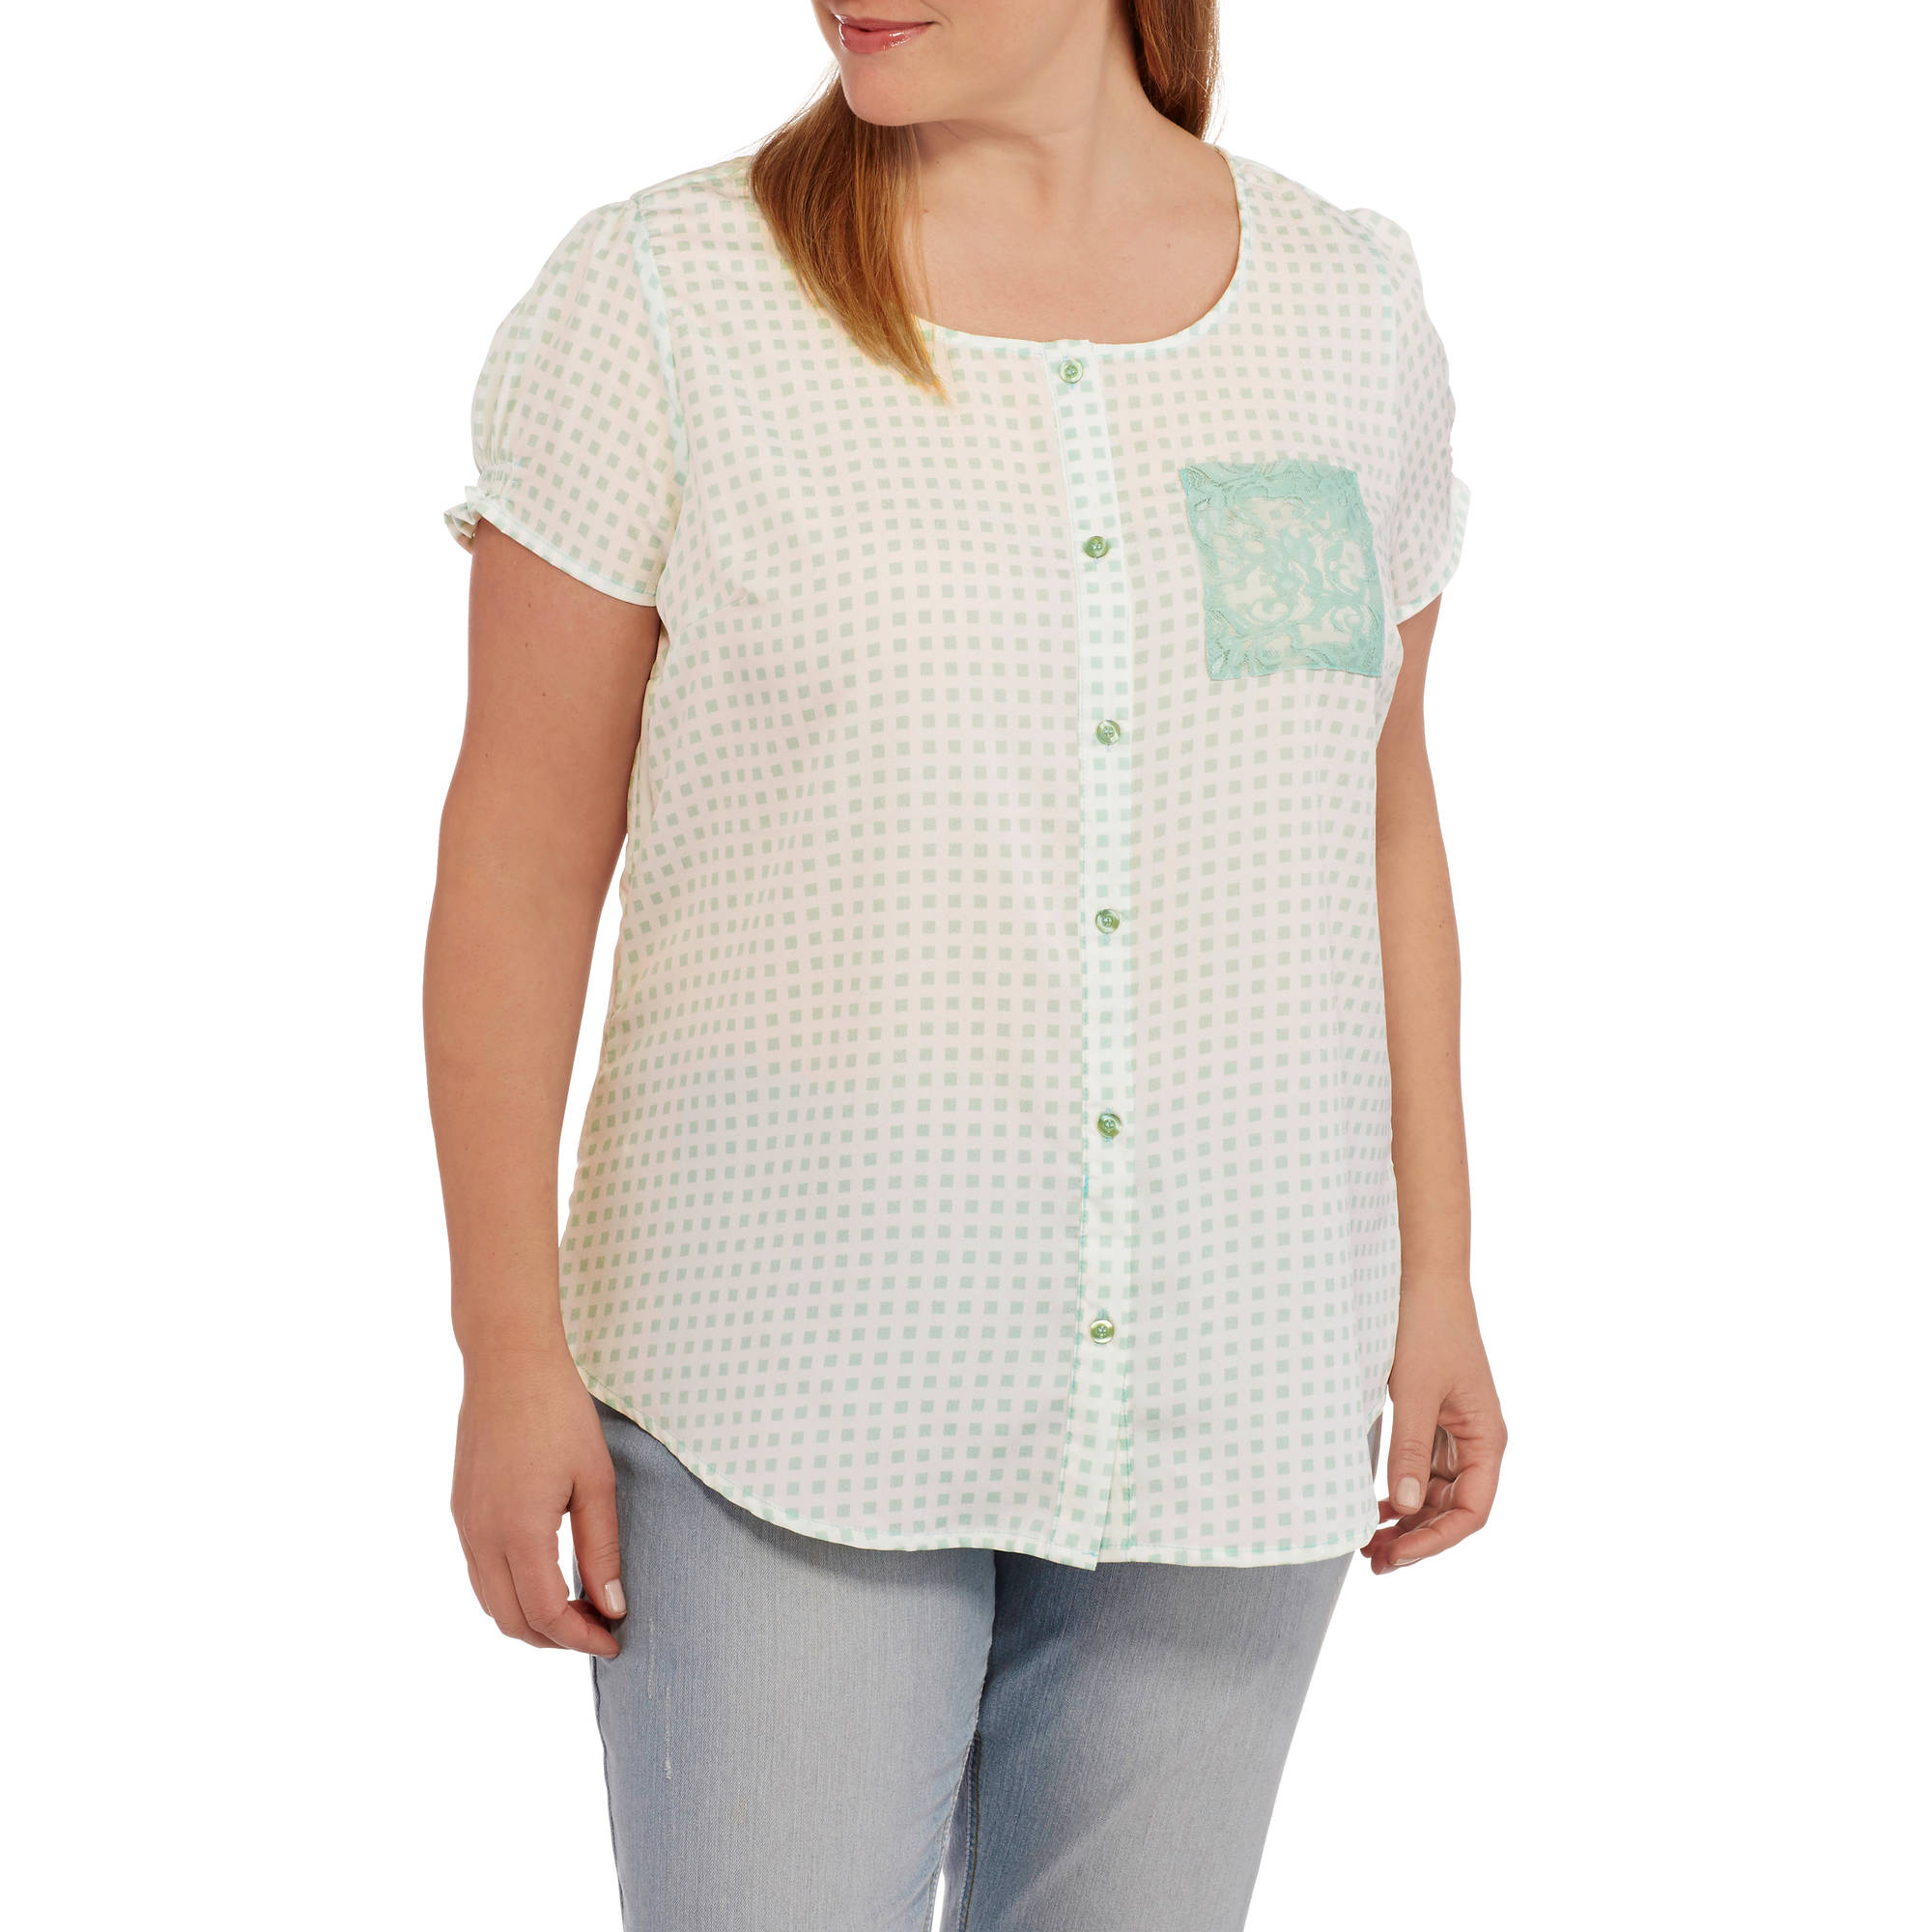 Millennium Women's Plus Checkered Button Front Top with Lace Pocket